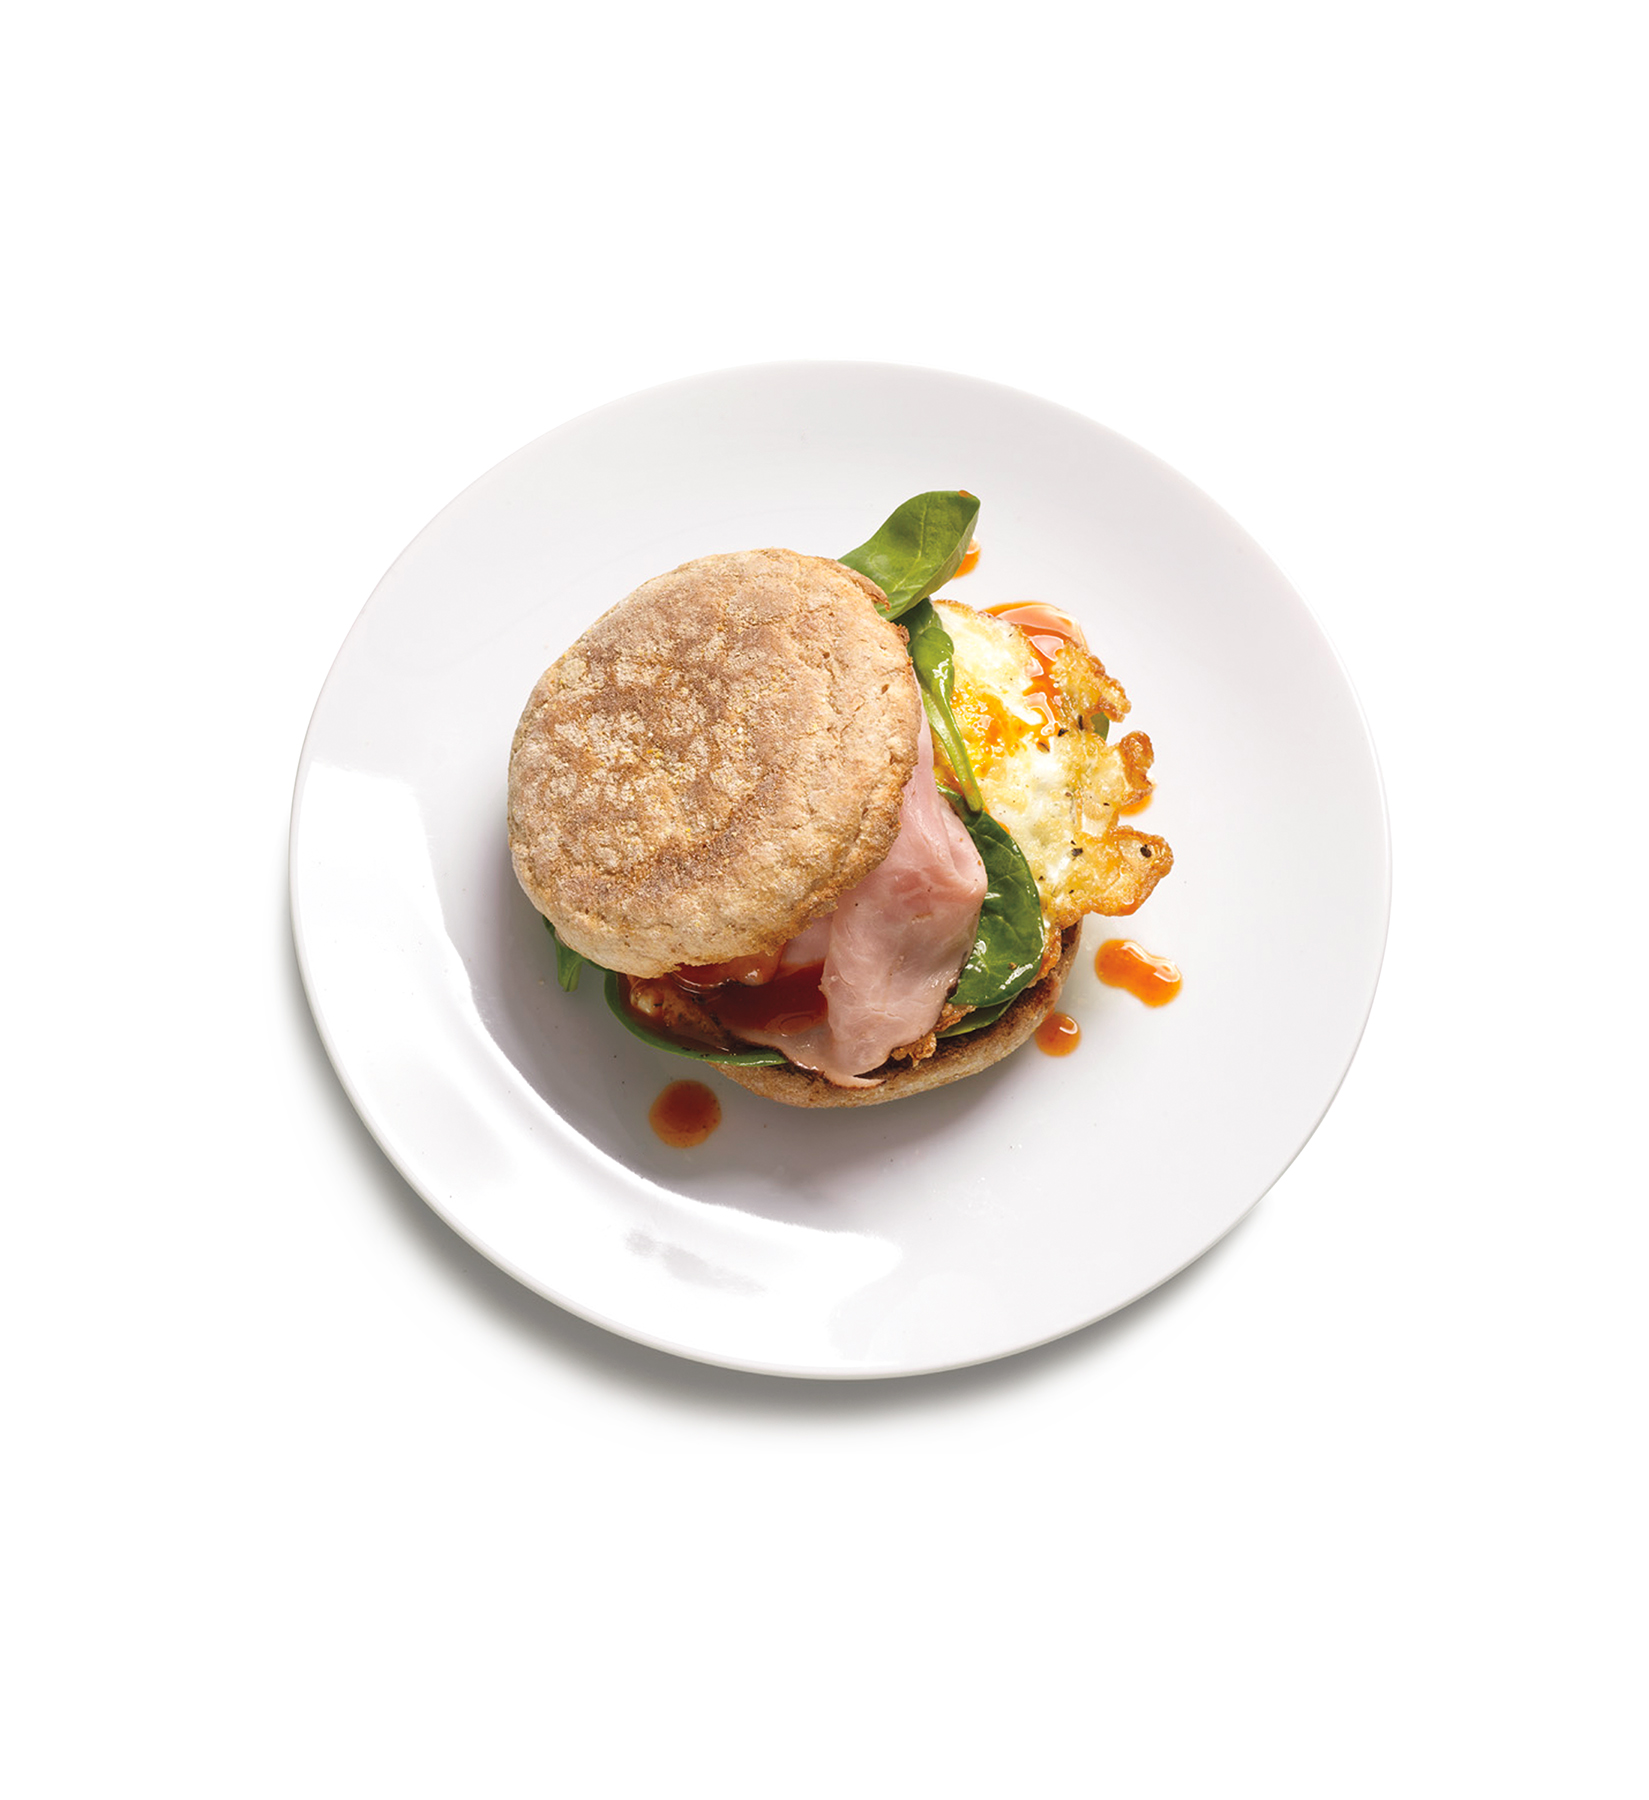 Egg Sandwich With Ham and Spinach